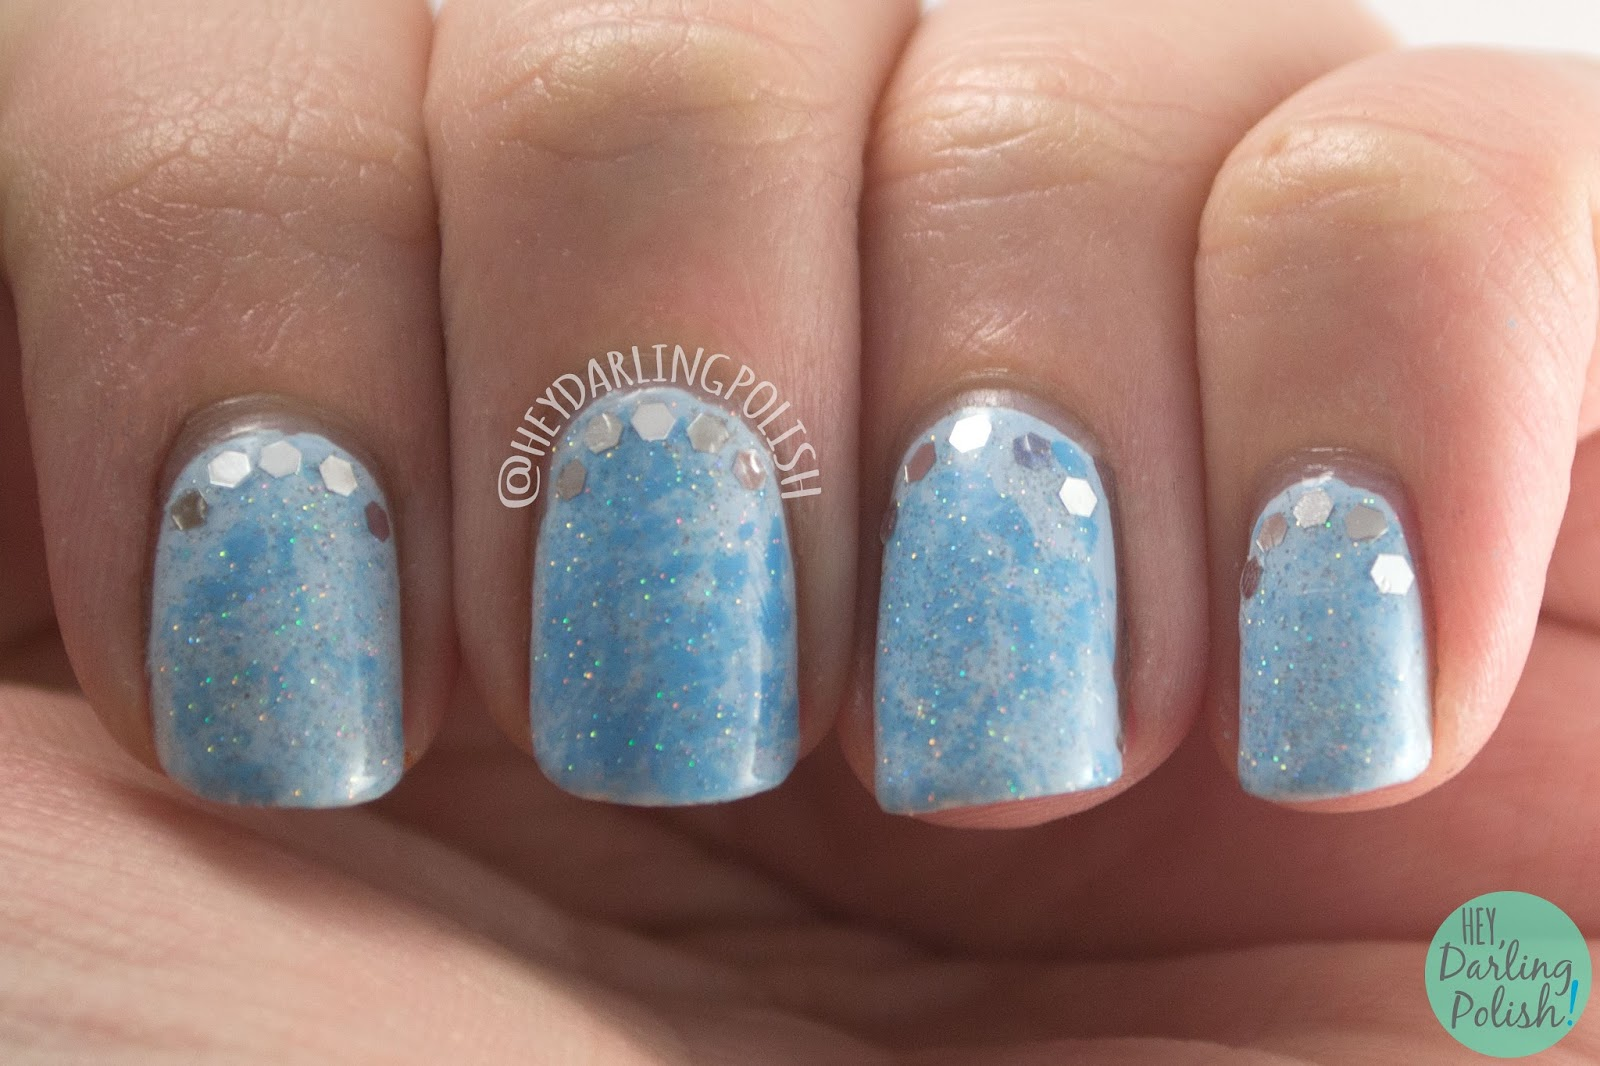 nails, nail art, nail polish, blue, saran wrap, glequins, hey darling polish, nail linkup, sparkles, cinderella